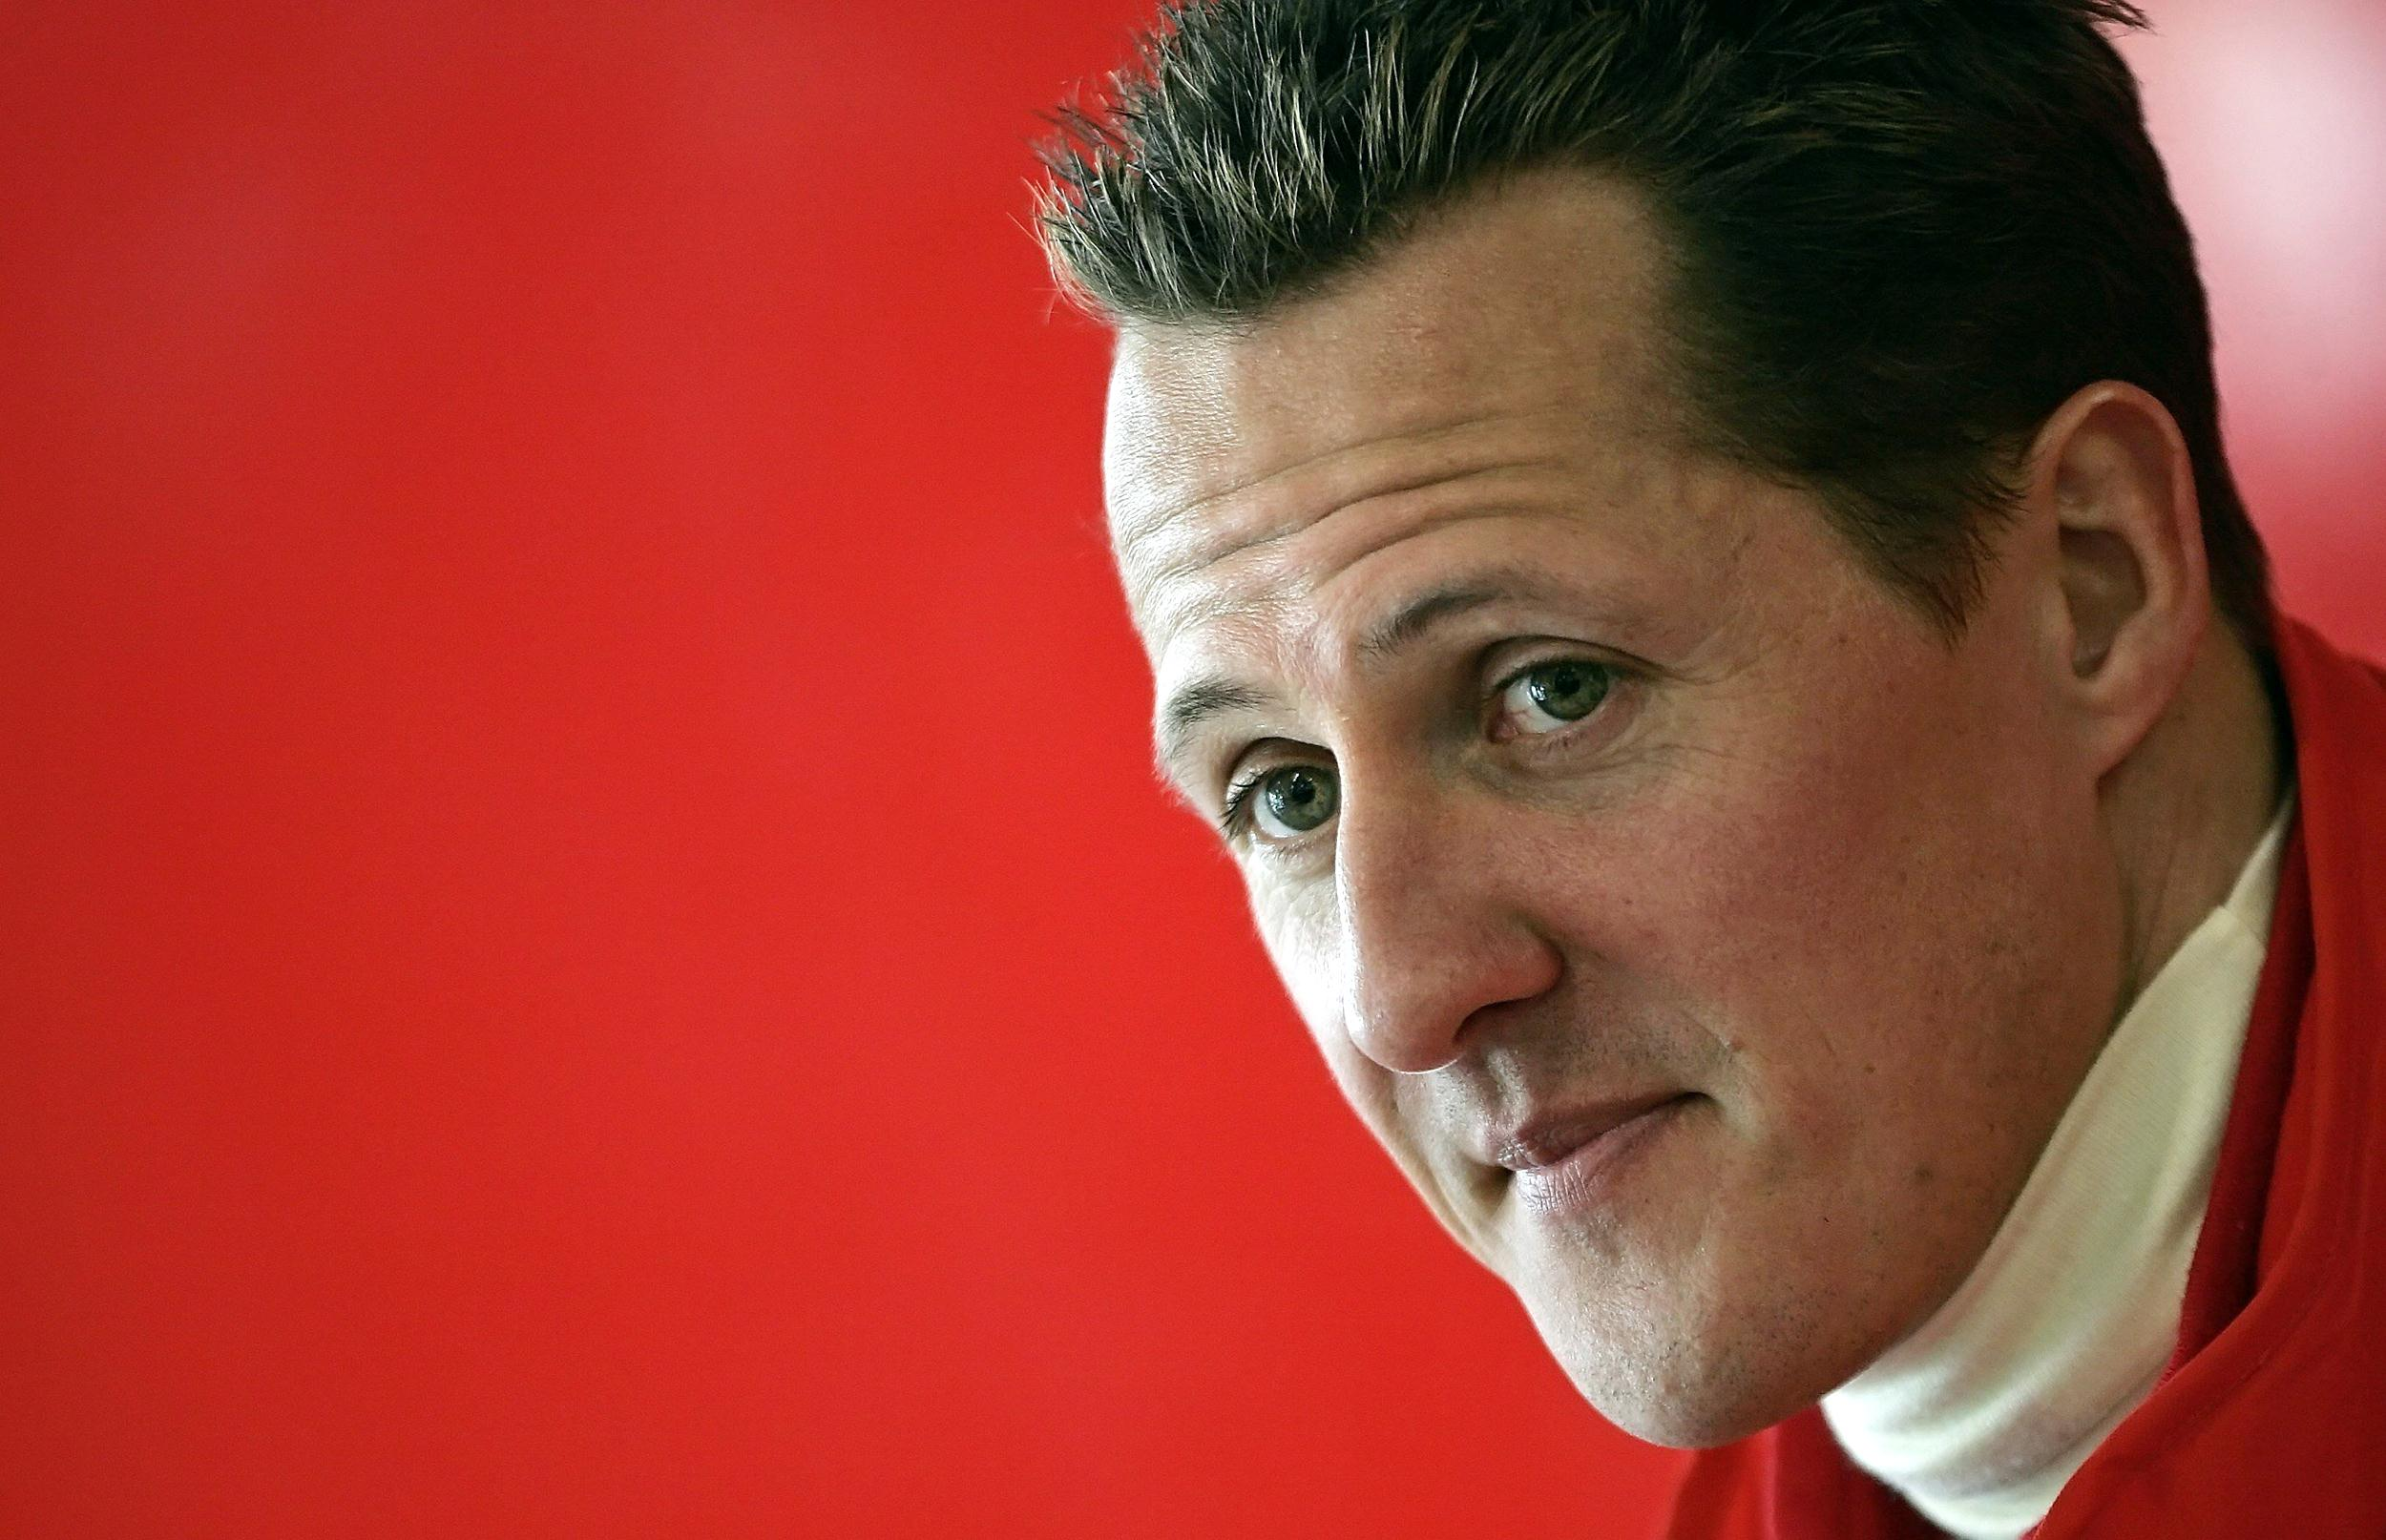 Image: File photo of Michael Schumacher of Germany in Italy